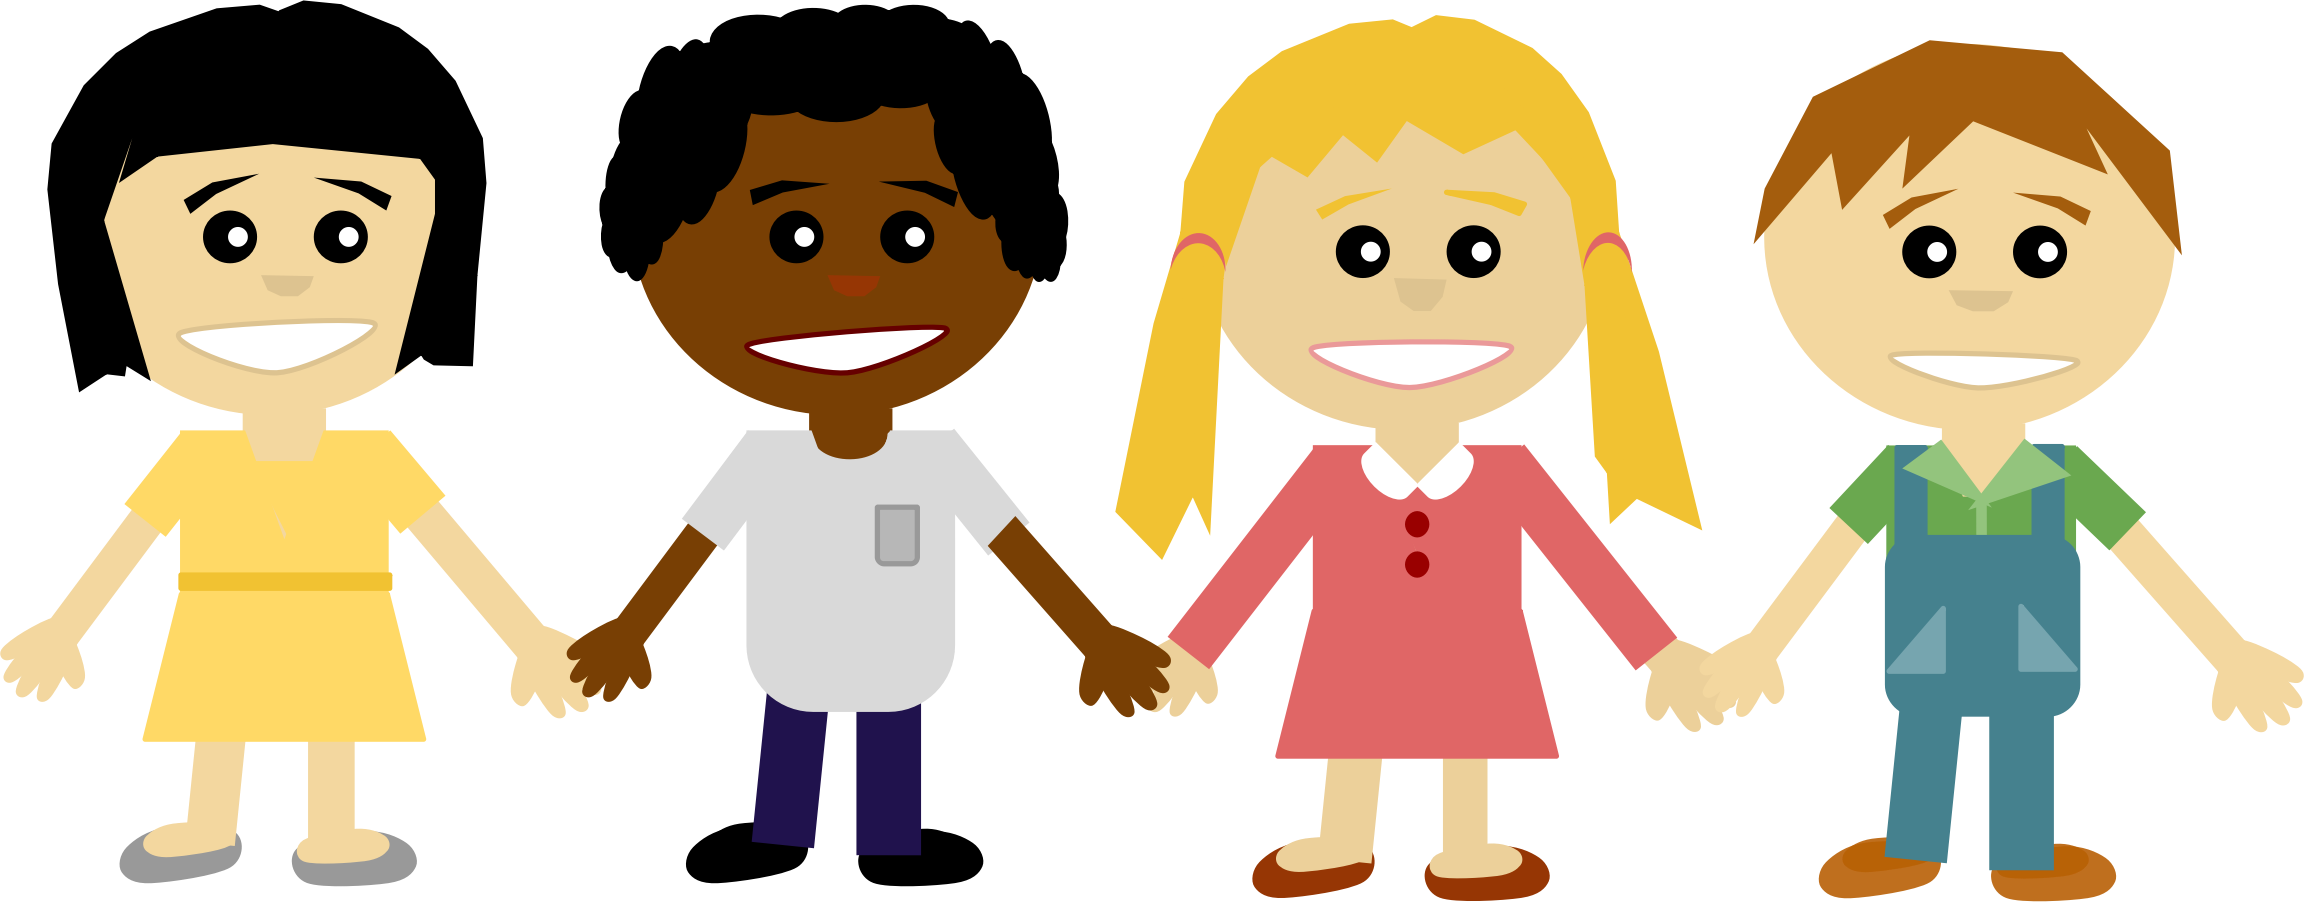 Clipart walking person cute. People holding hand group